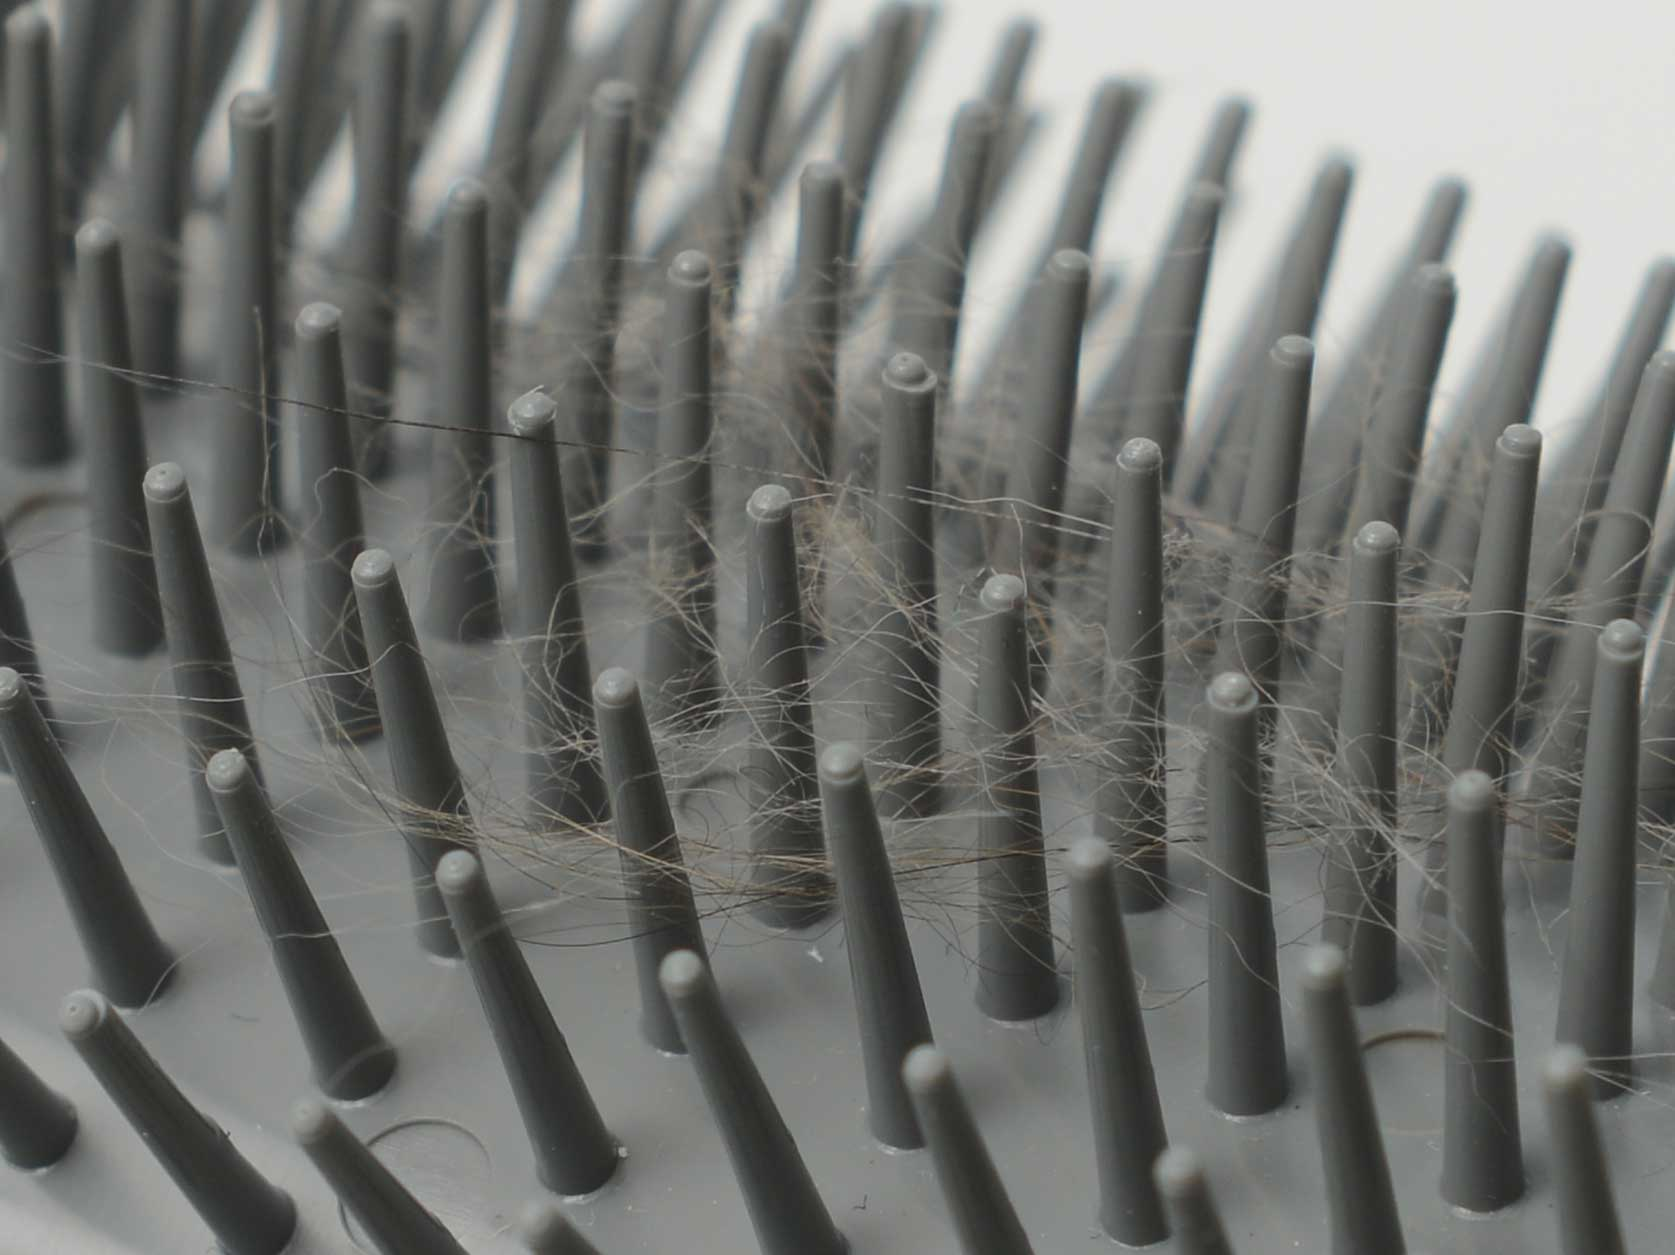 Close-up of hair in the Catit Self Groomer brush